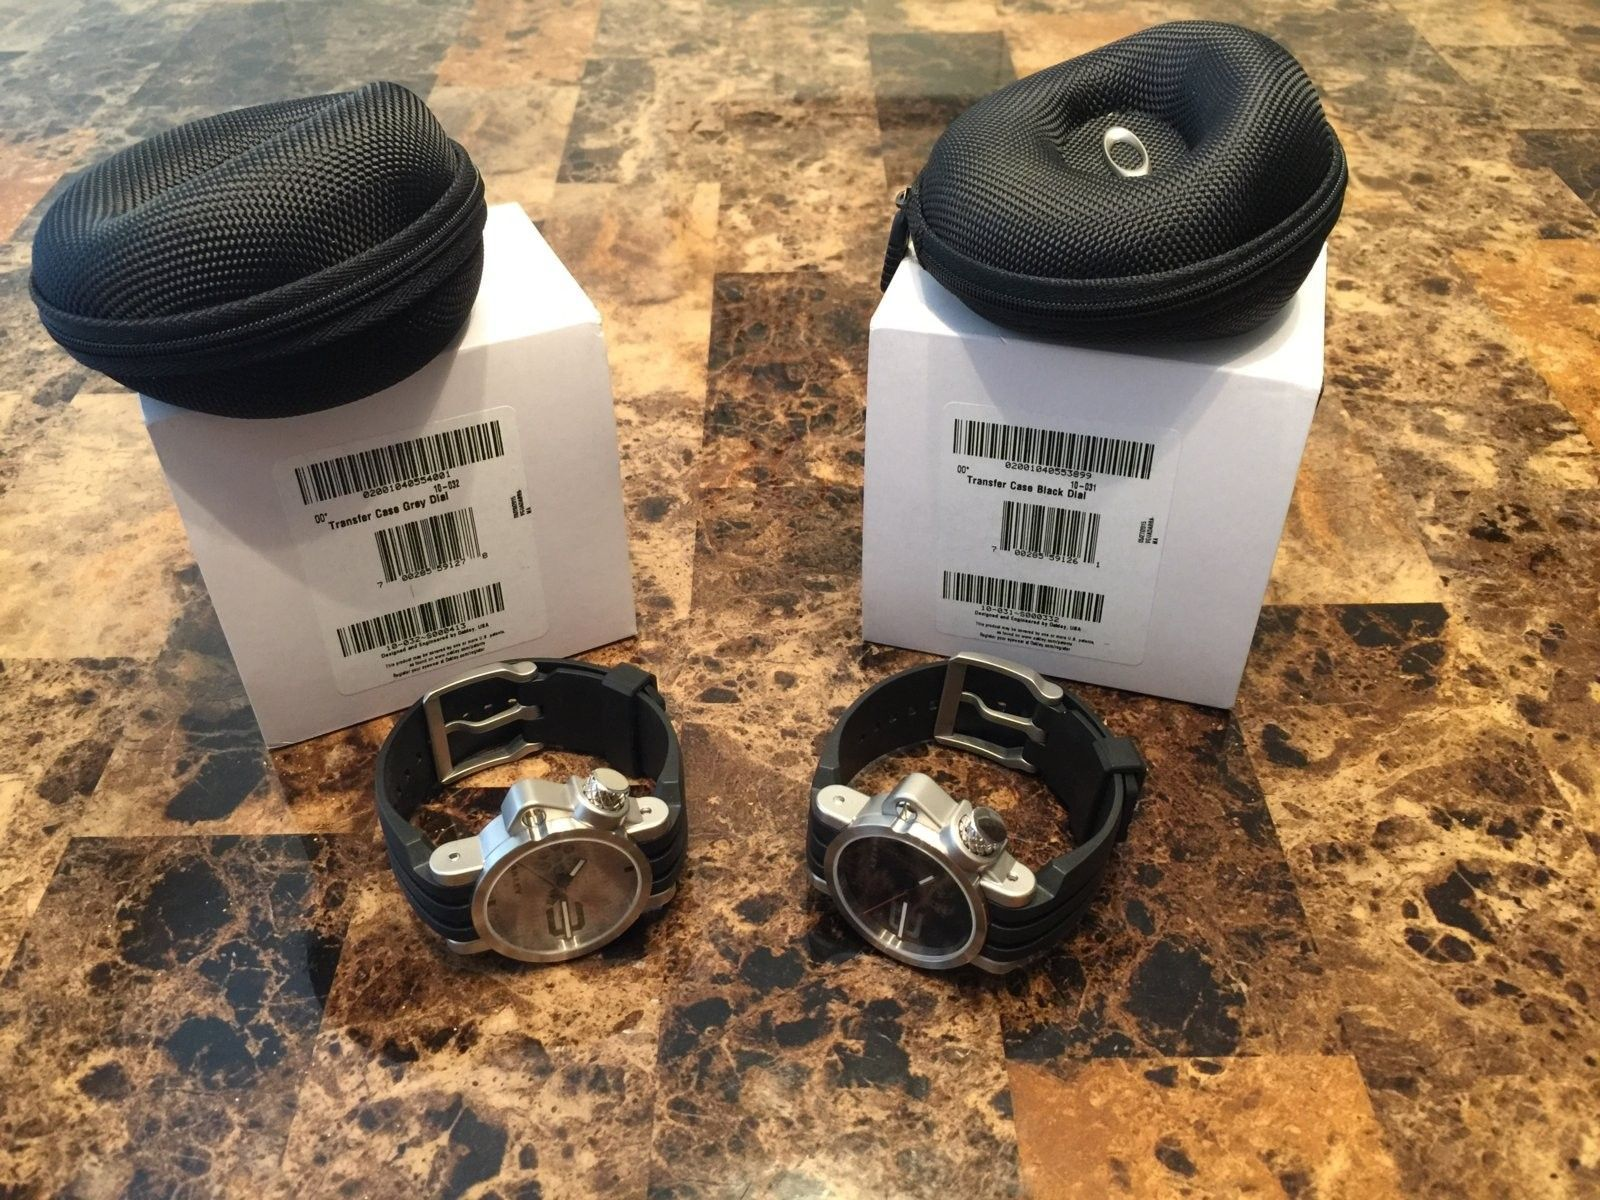 2 LNIB Transfer Cases $280 - image.jpeg